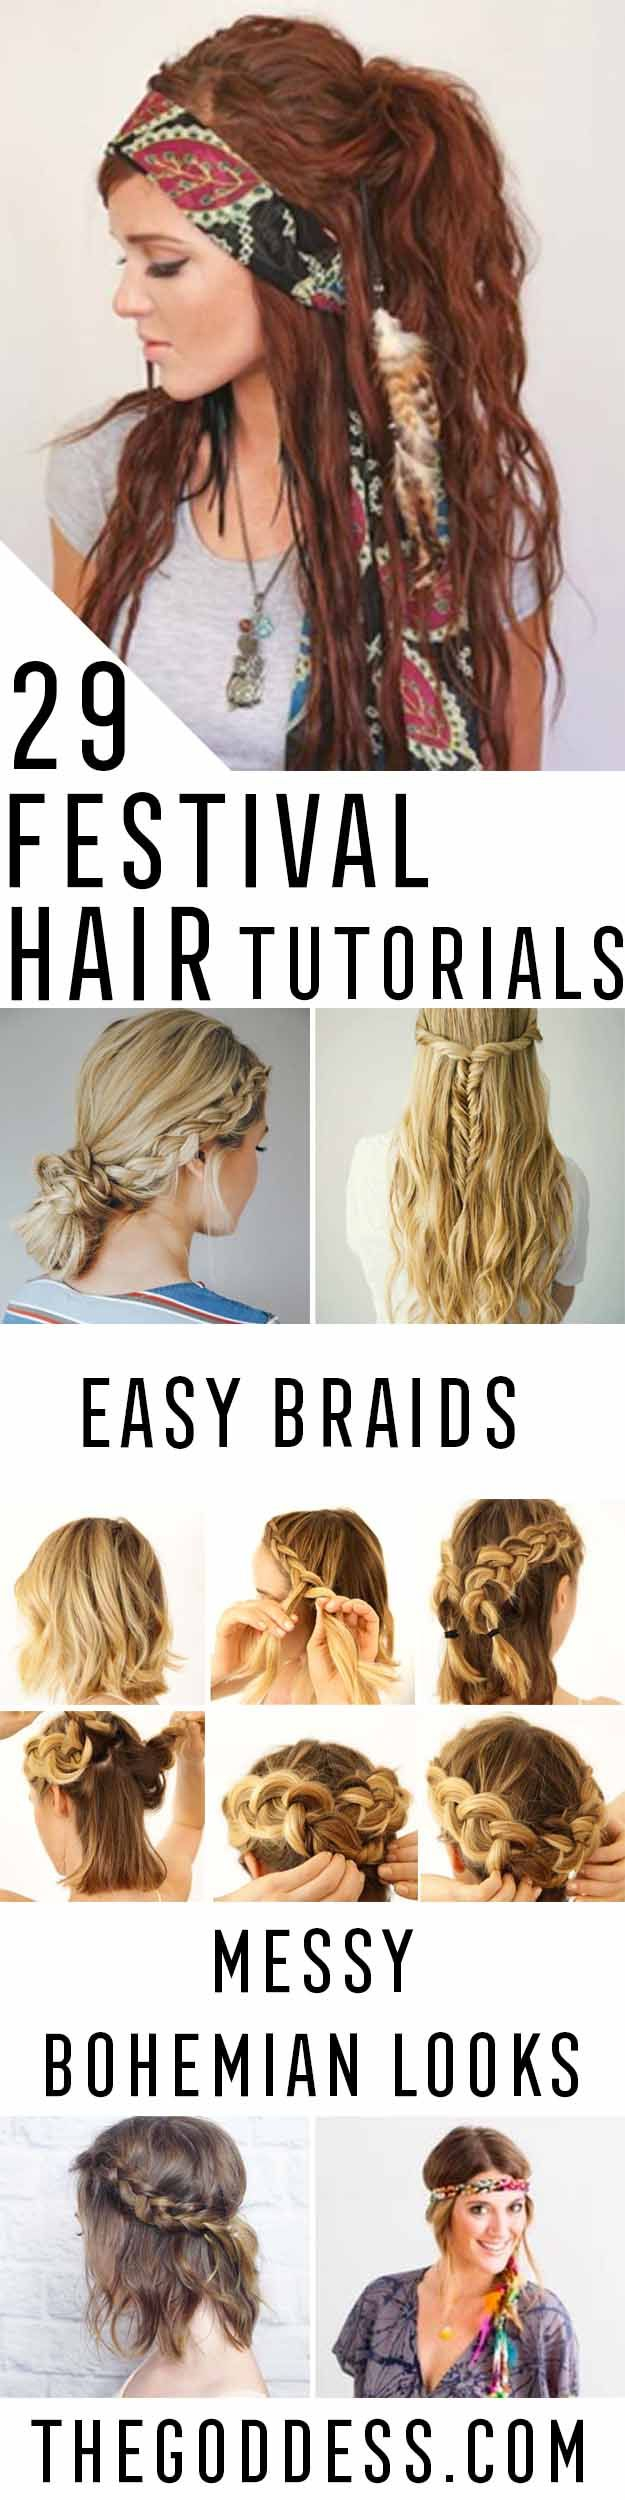 Festival Hair Tutorials - Short Quick and Easy Tutorial Guides and How Tos. Braids, Curly Hair, Long Hair, Medium Hair, and the Perfect Updo - Great Ideas for That Summer Music Edm Show, New Hair Color or Some Awesome Hairstyles With Accessories and Flowers - Boho and Bohemian Styles with Glitter and a Headband - Beauty Ideas Hair Styles and Tips for Coachella, ACL, SXSW, Ultra, Stagecoach, bonaroo governer's ball, burning man, lalapalooza festivals…